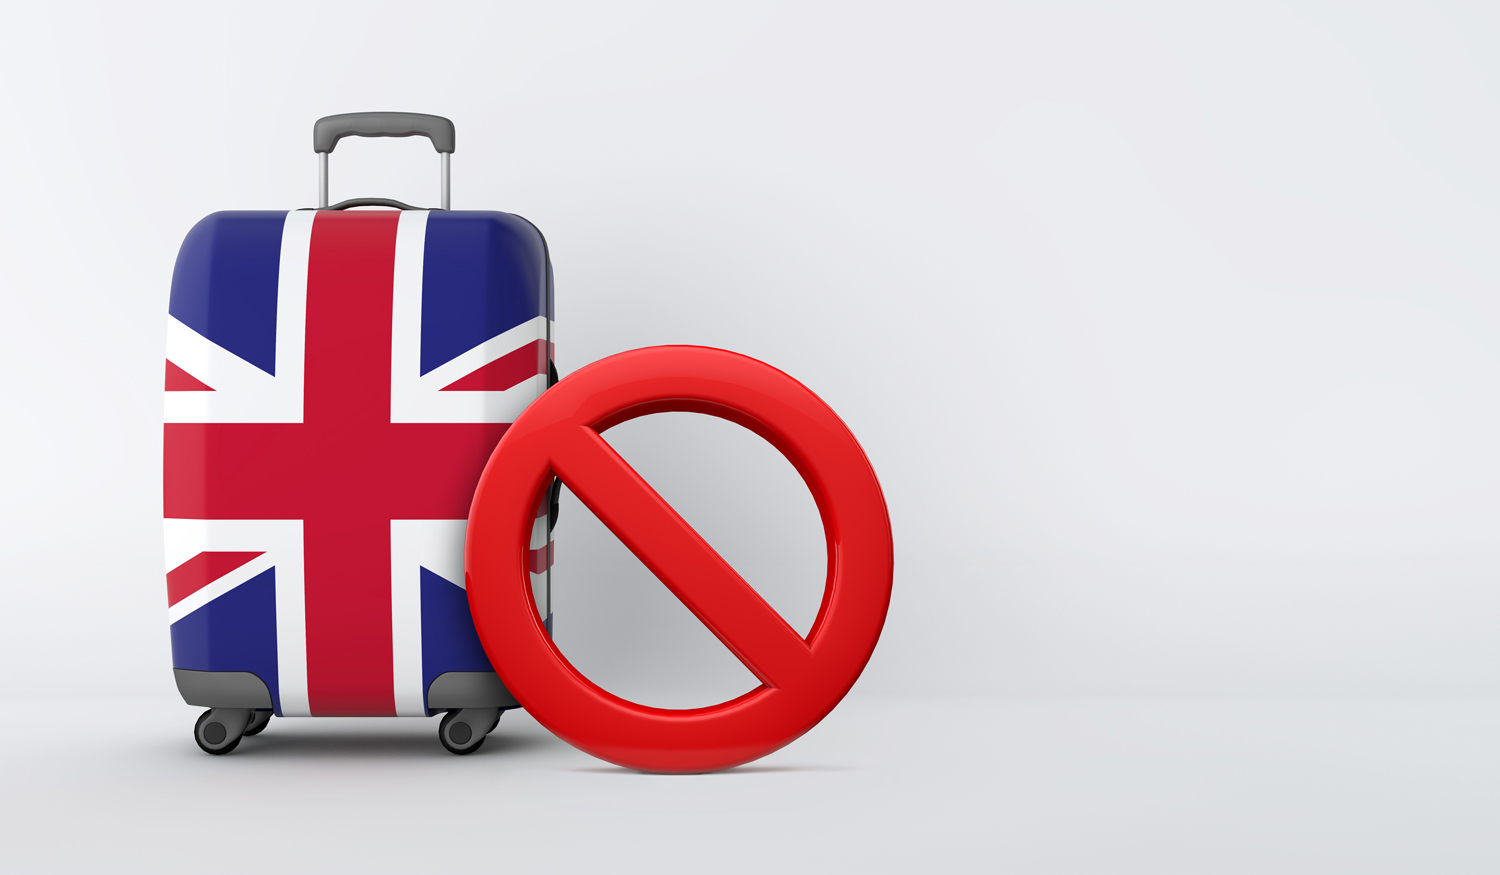 New strain of COVID-19 in the UK prompts travel ban